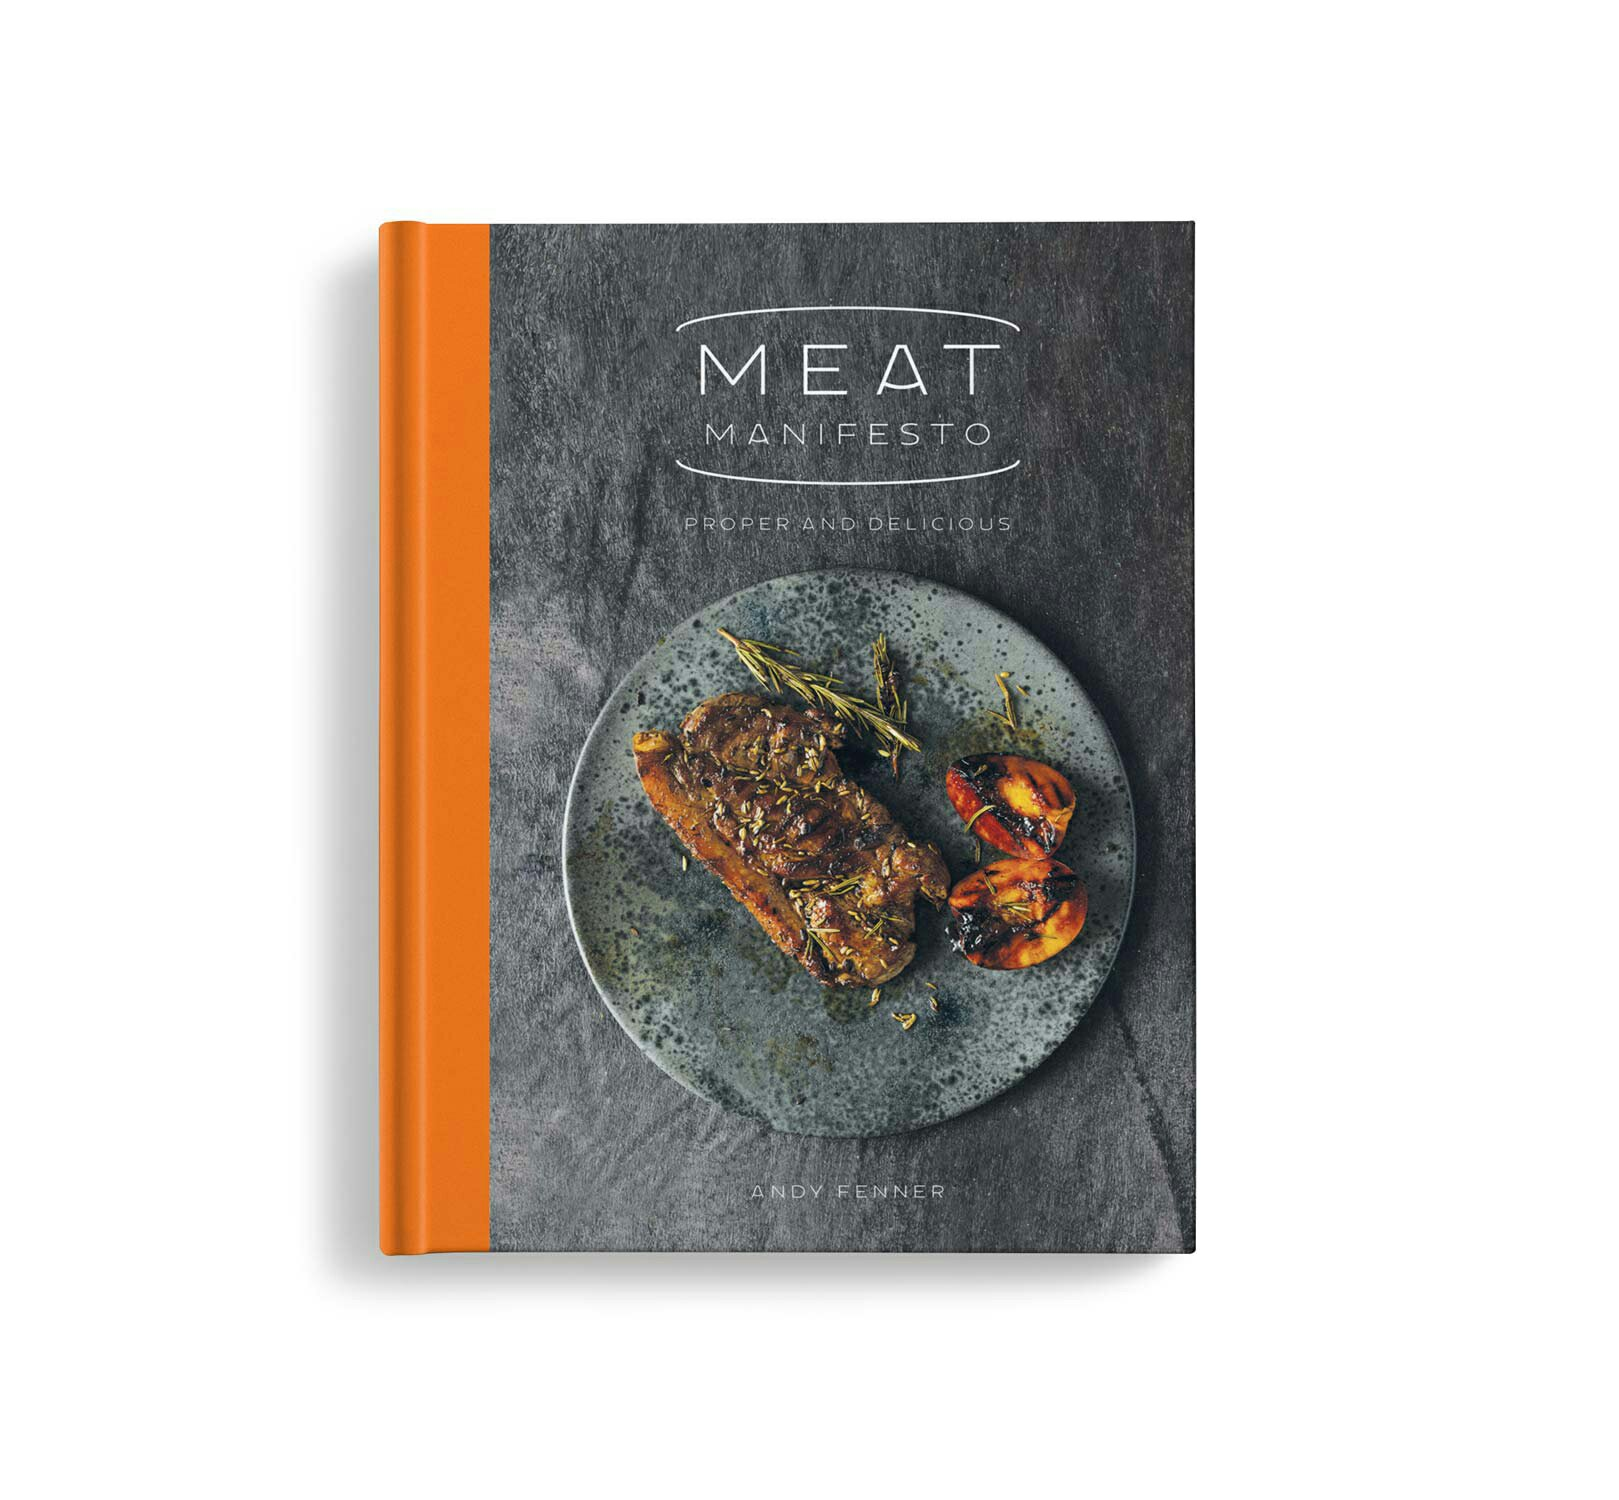 meat manifesto andy fenner quivertree sonia cabano blog eatdrinkcapetown